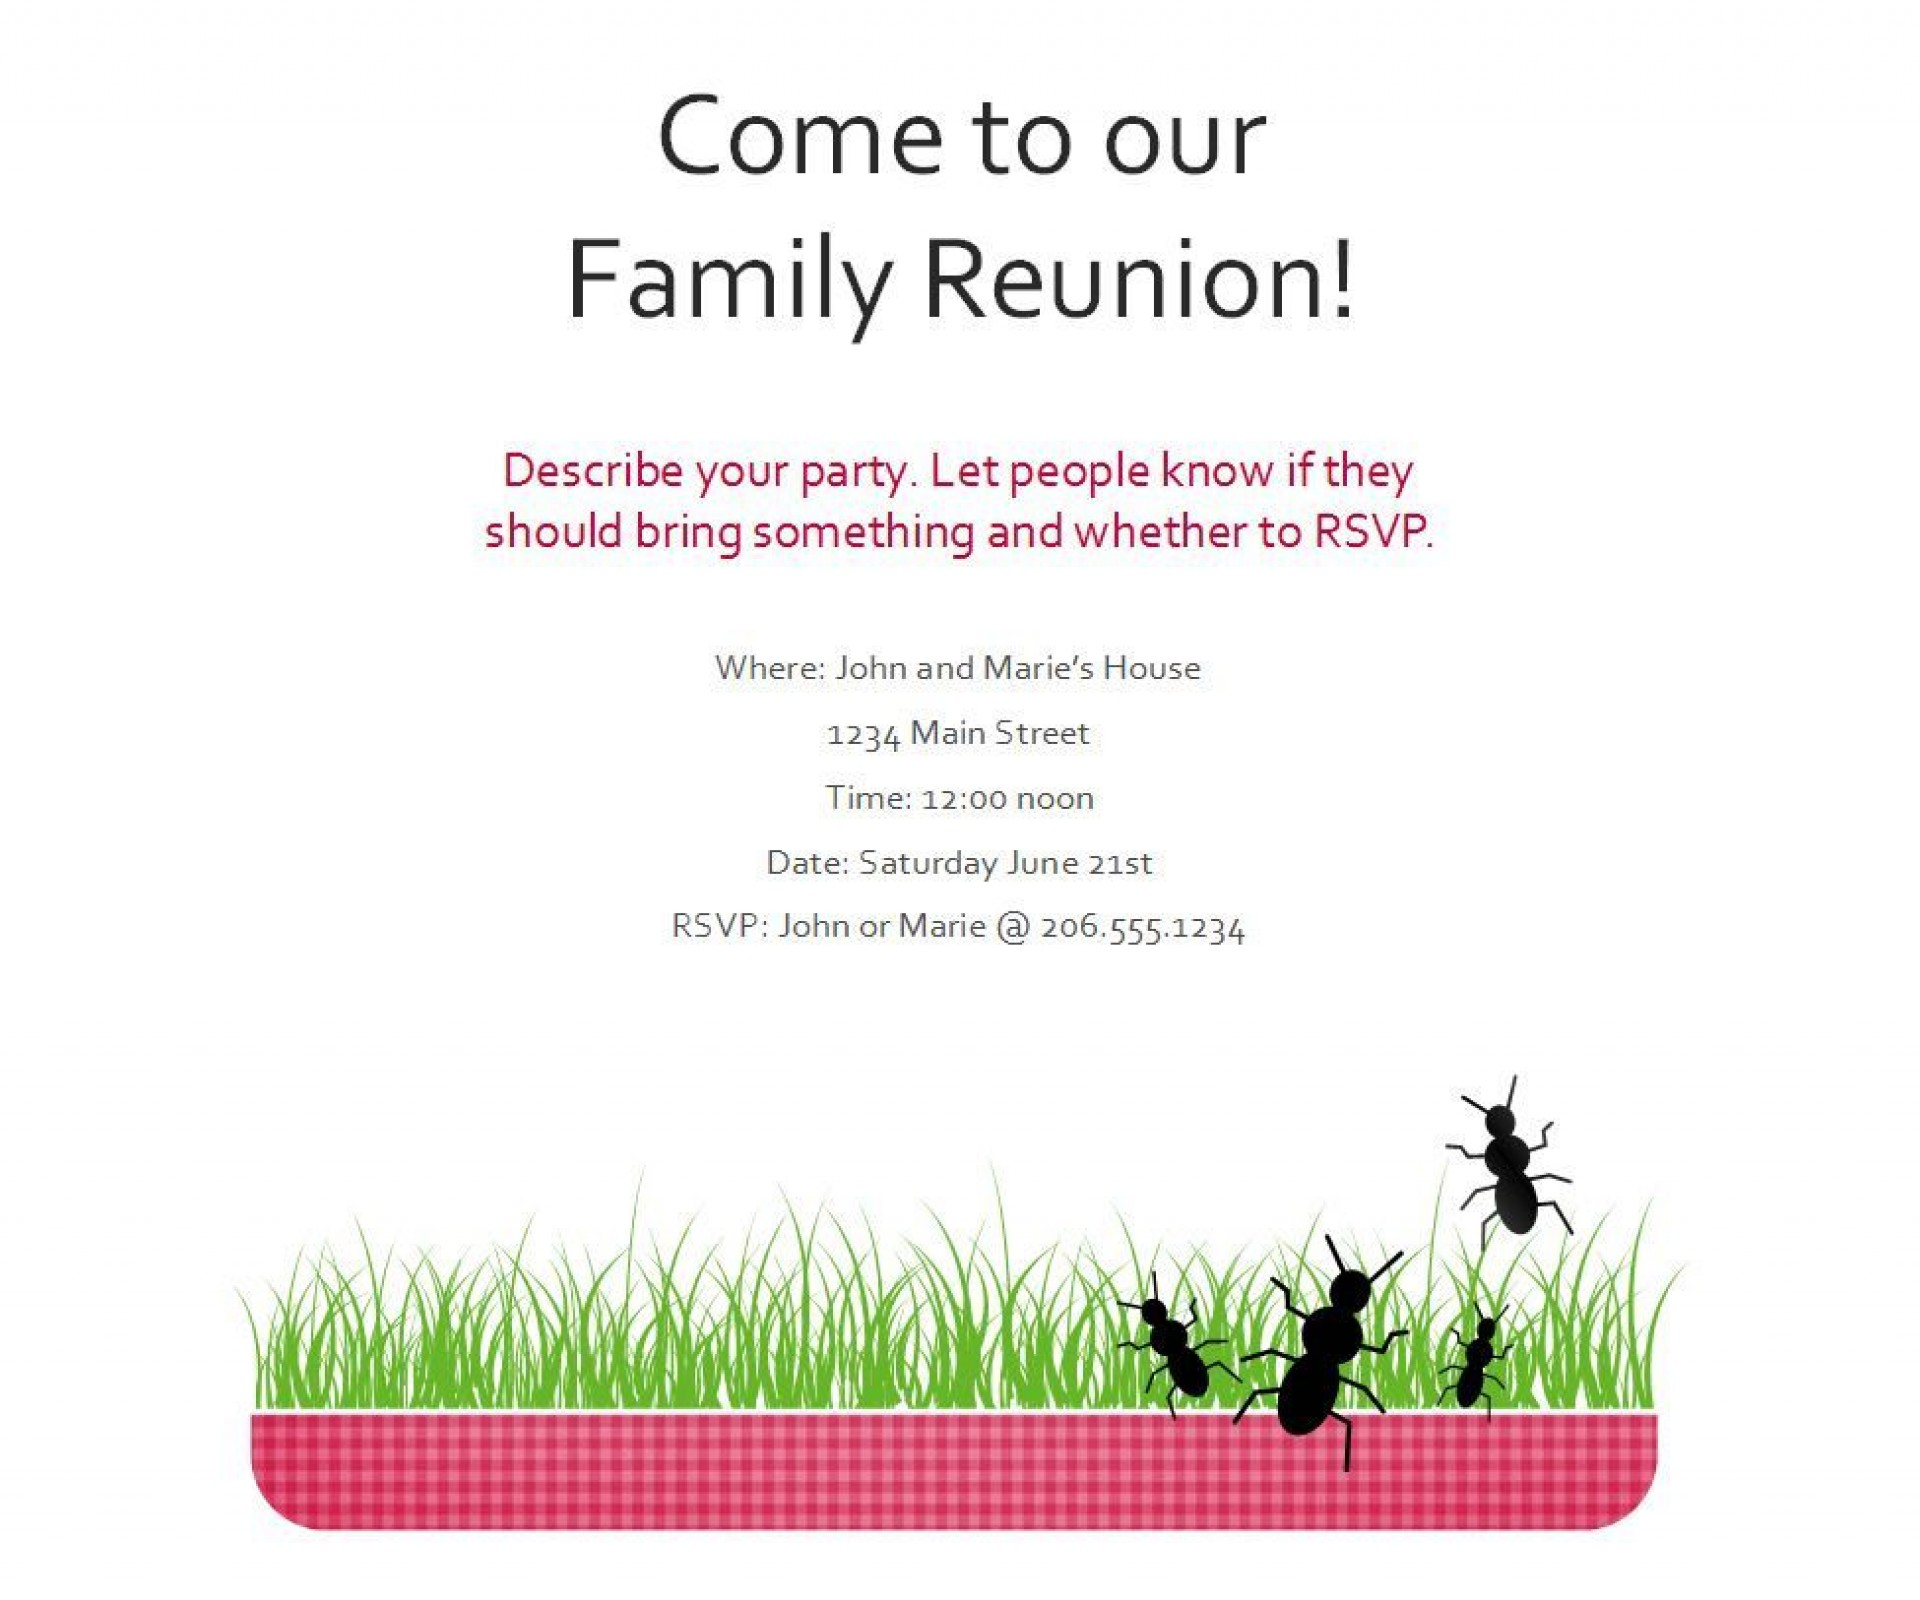 008 Outstanding Family Reunion Flyer Template Word High Def 1920